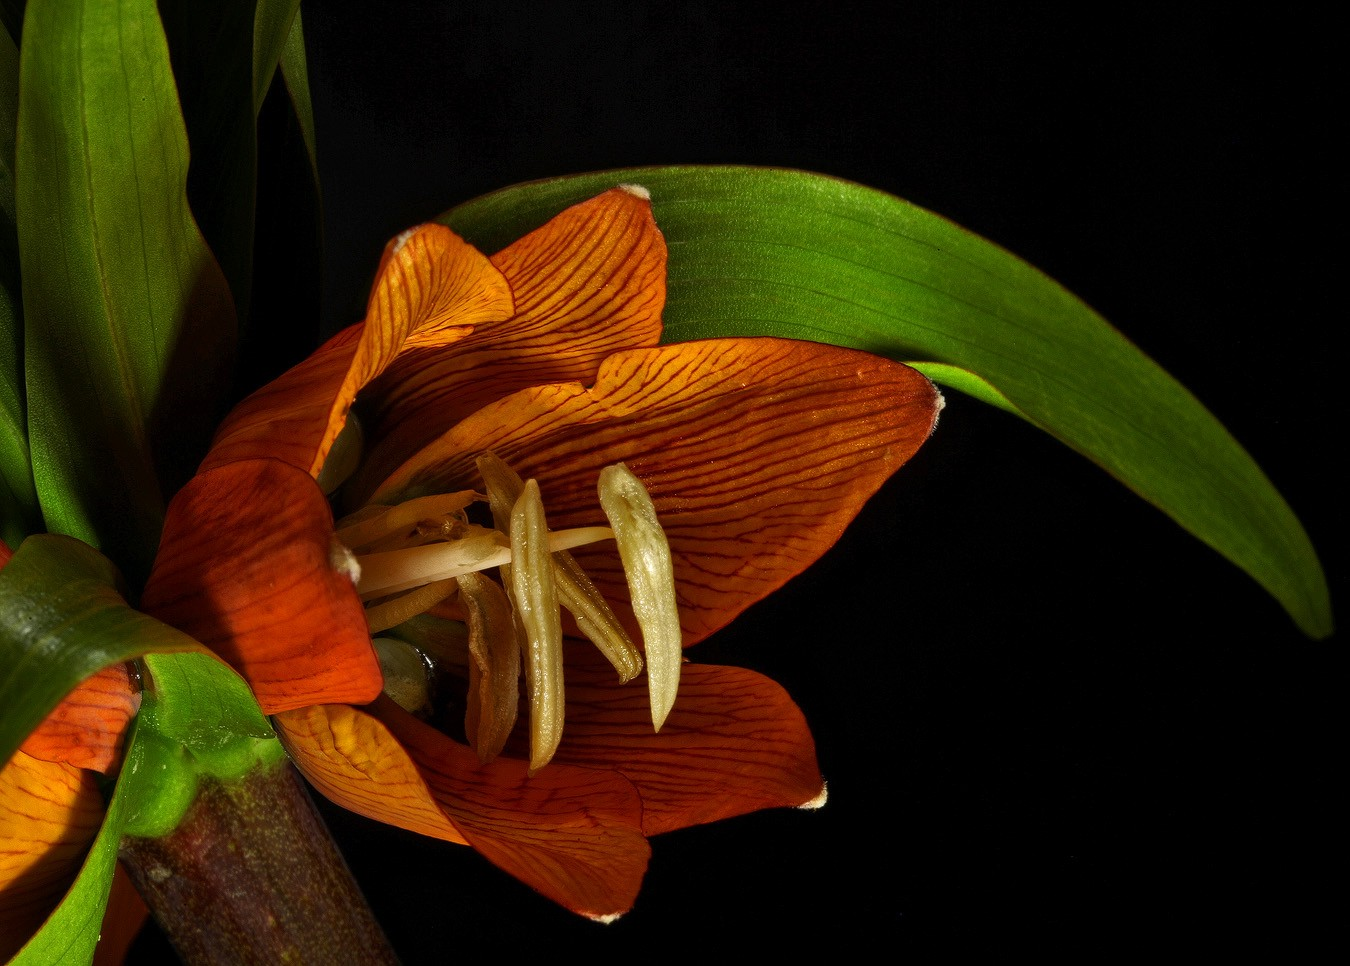 crown imperial img aw author sava gregory and ver verena